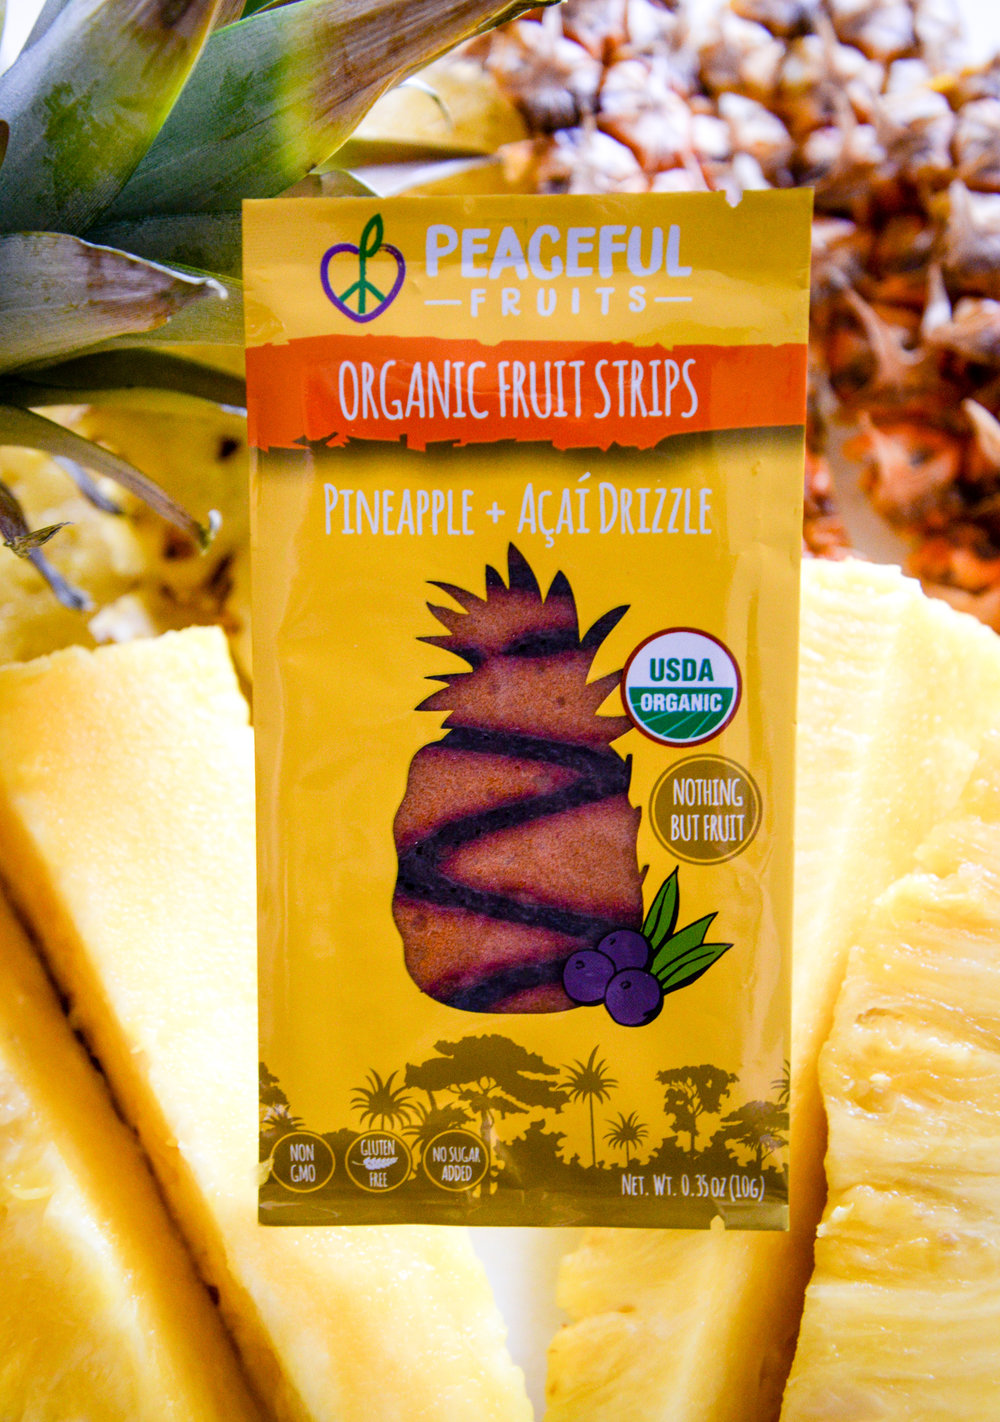 Pineapple + Acai Drizzle Fruit Leather